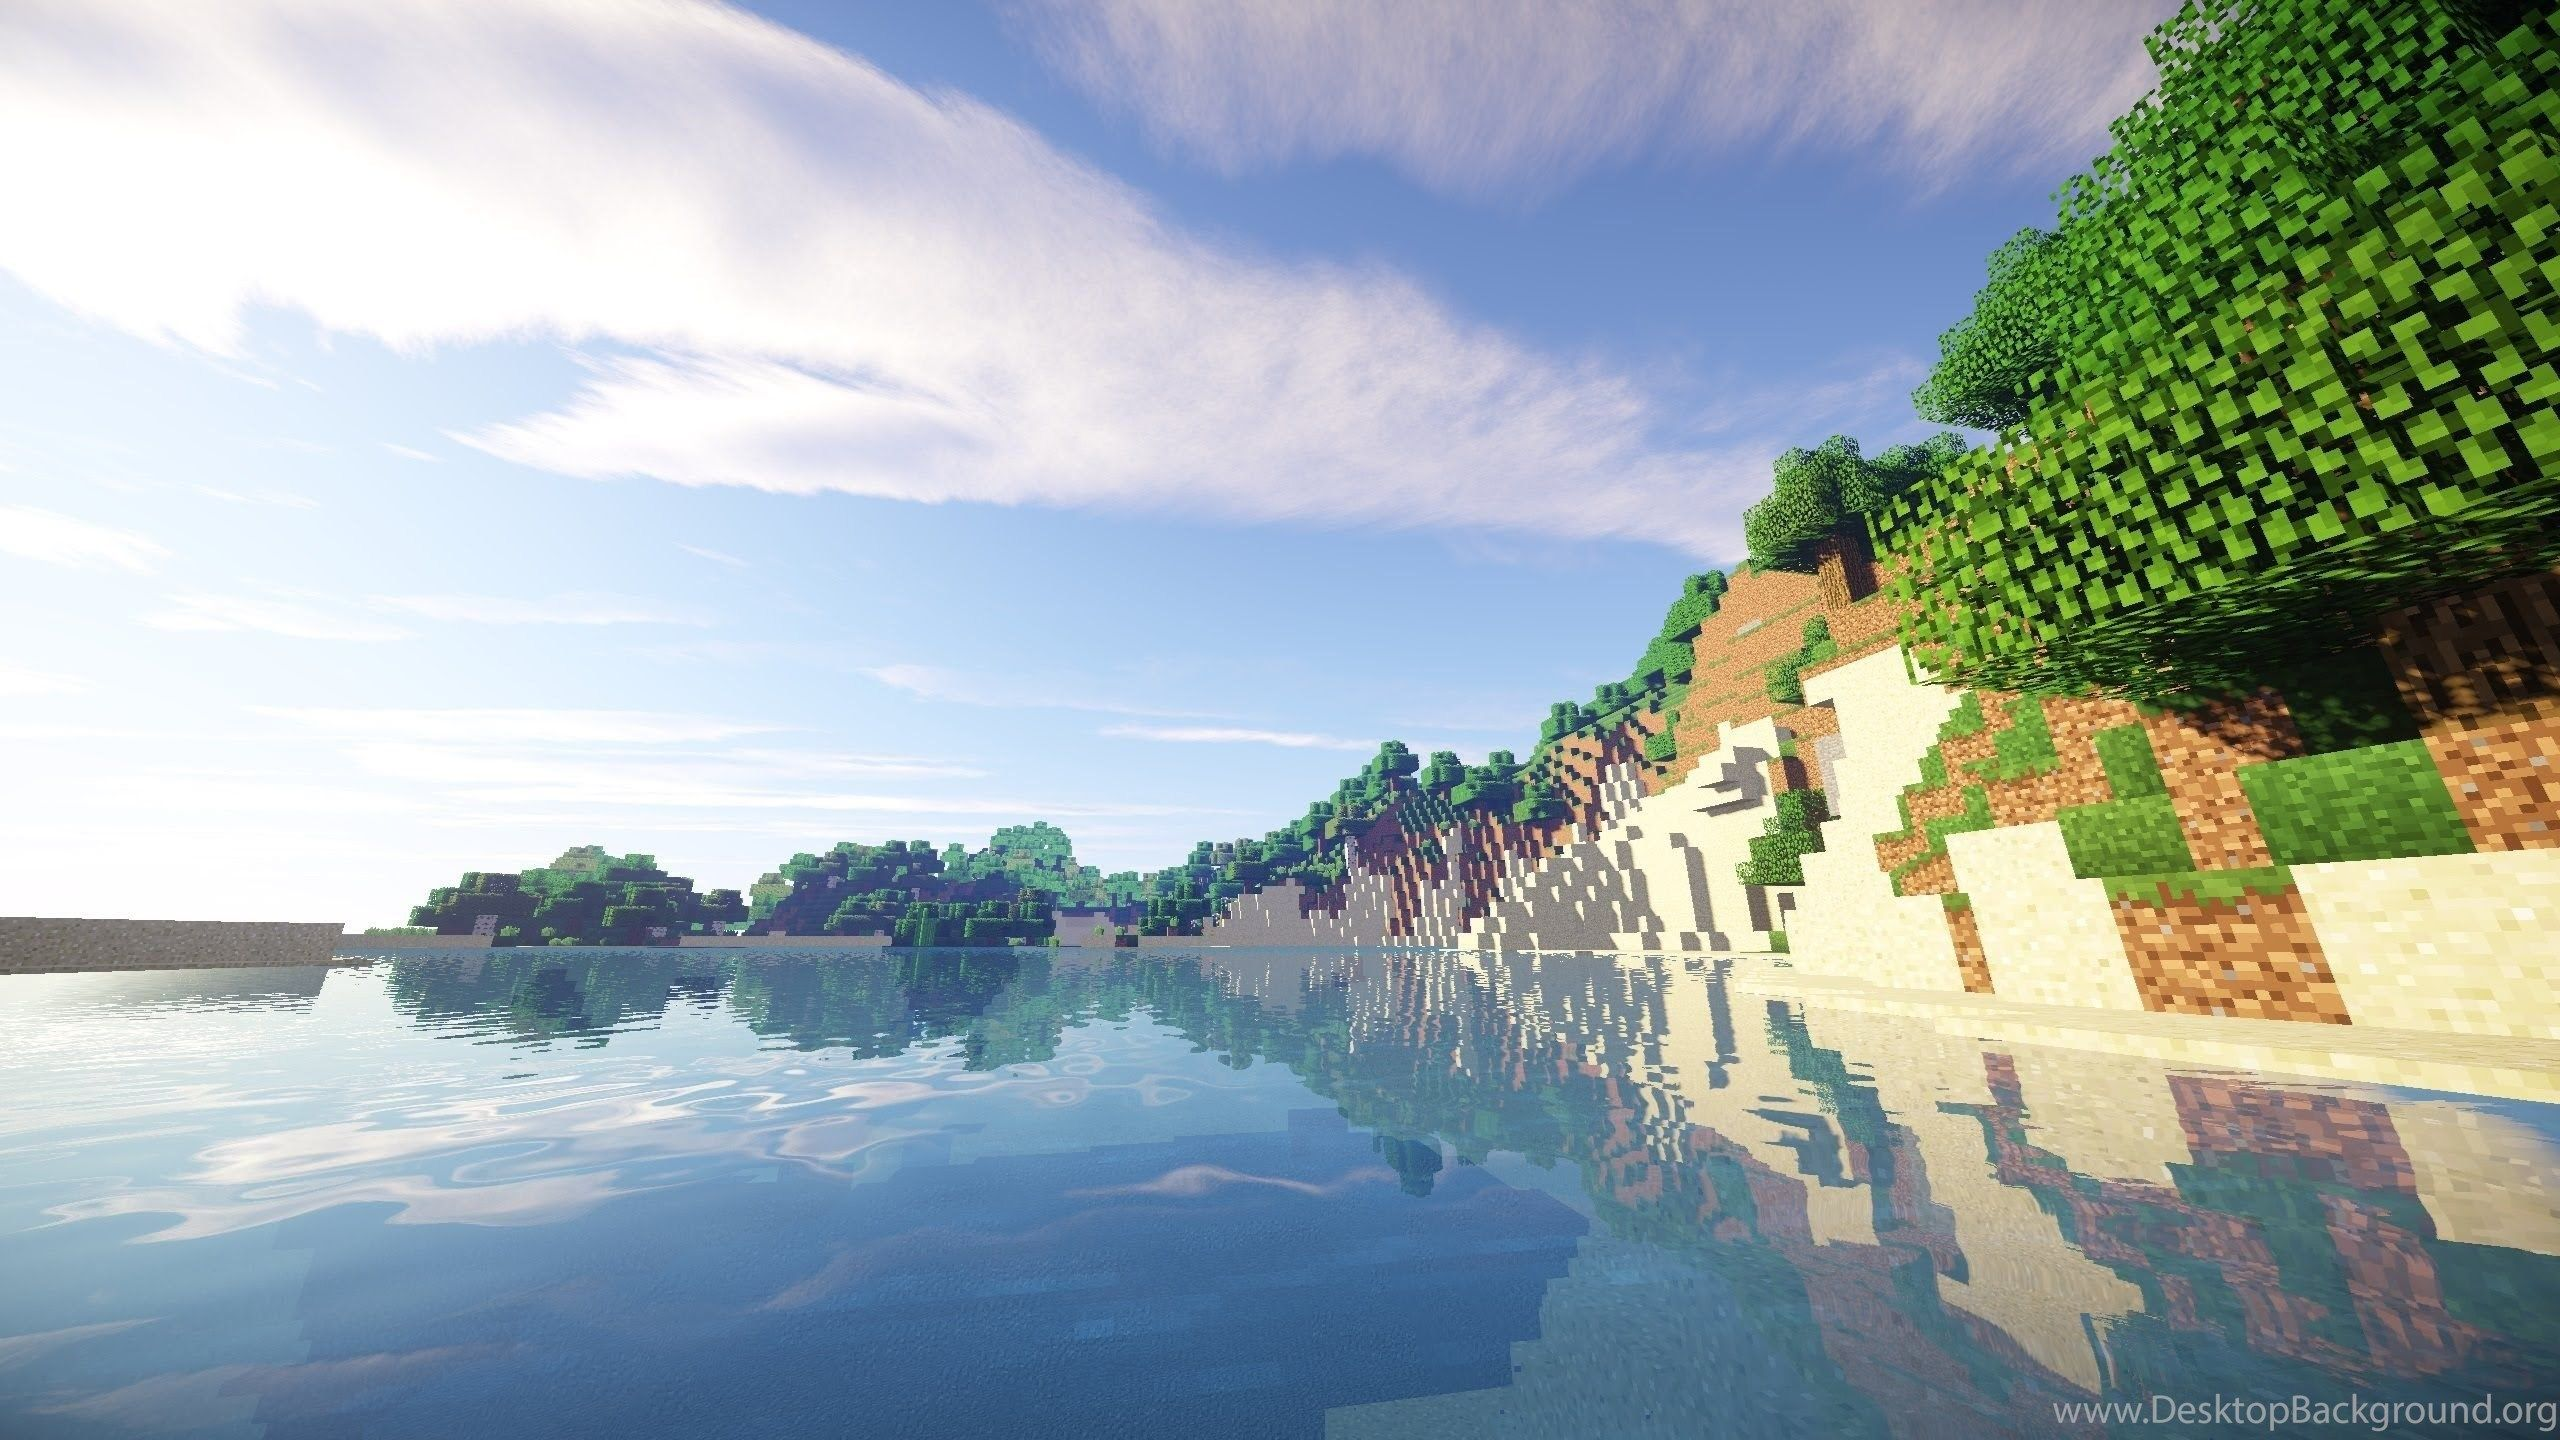 Minecraft Shaders Wallpapers Hd For Windows 10: Minecraft Shaders Wallpapers